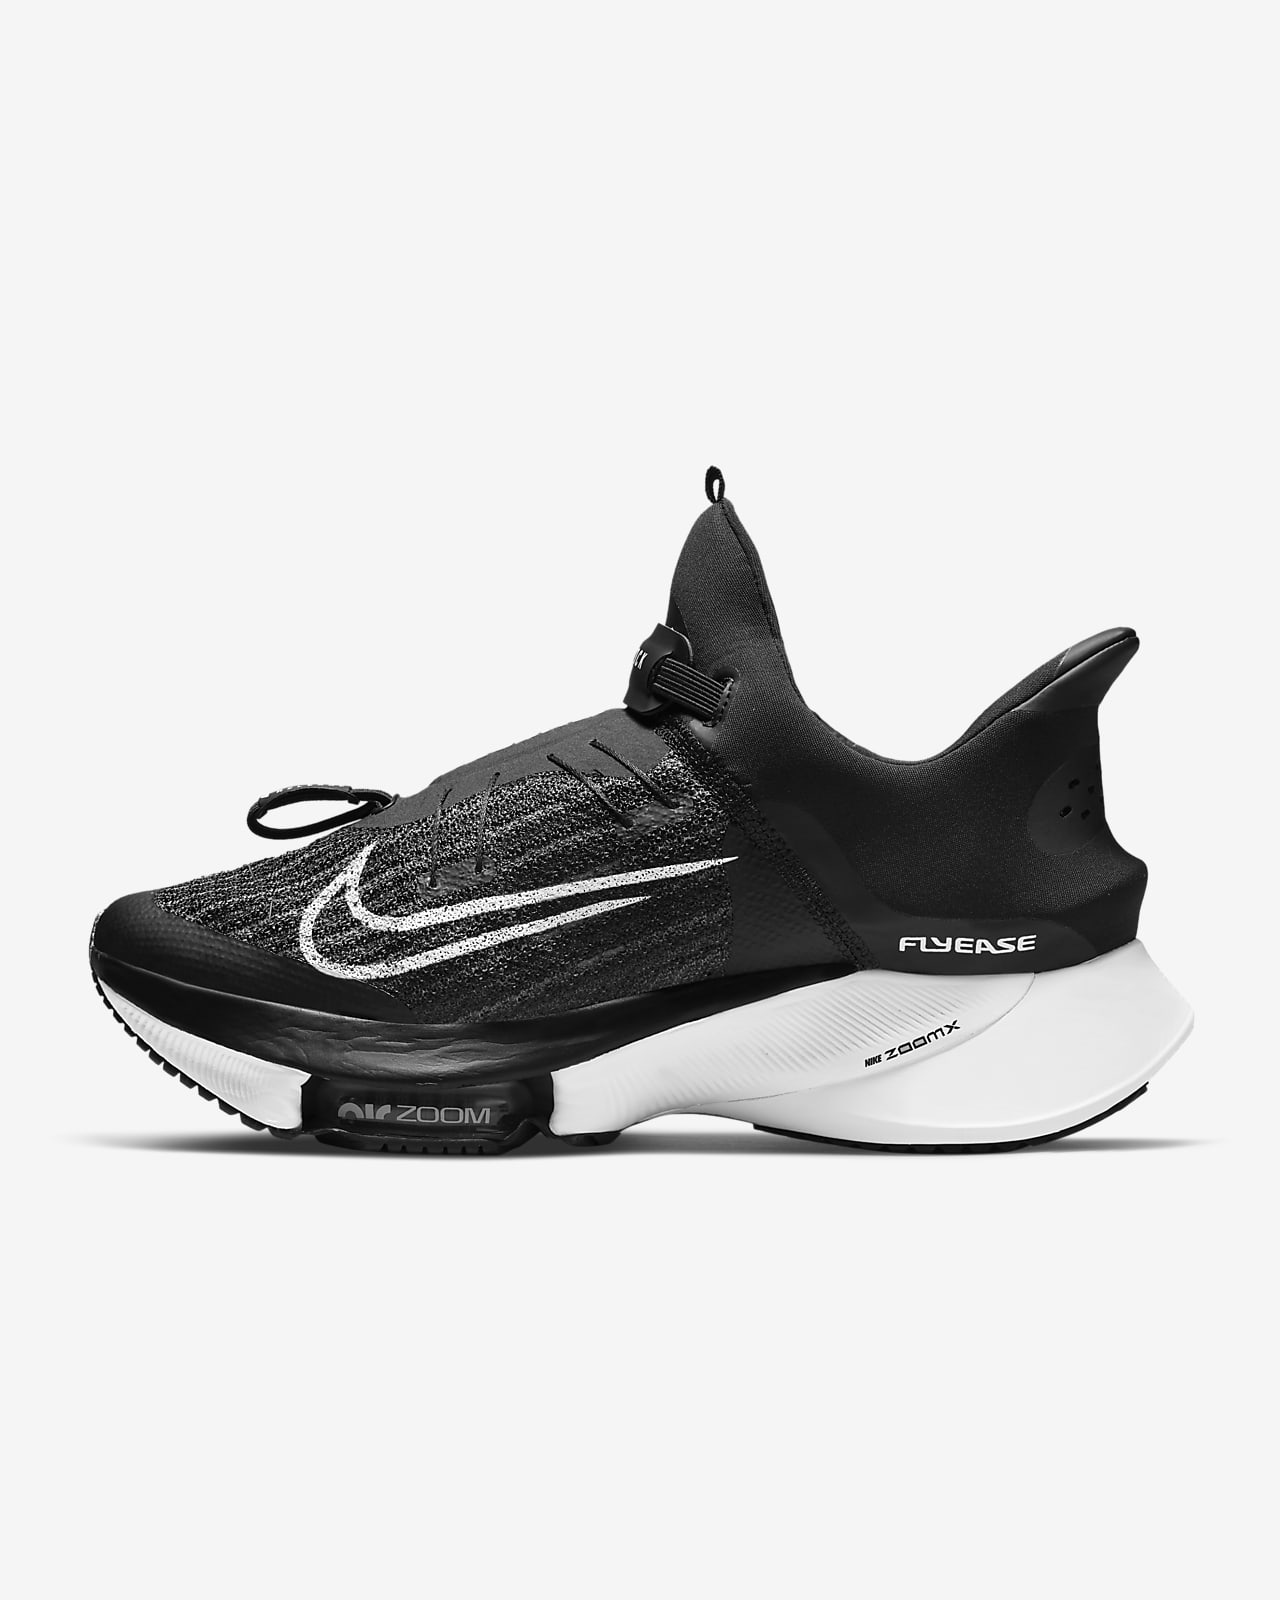 Nike Air Zoom Tempo NEXT% FlyEase Men's Running Shoe